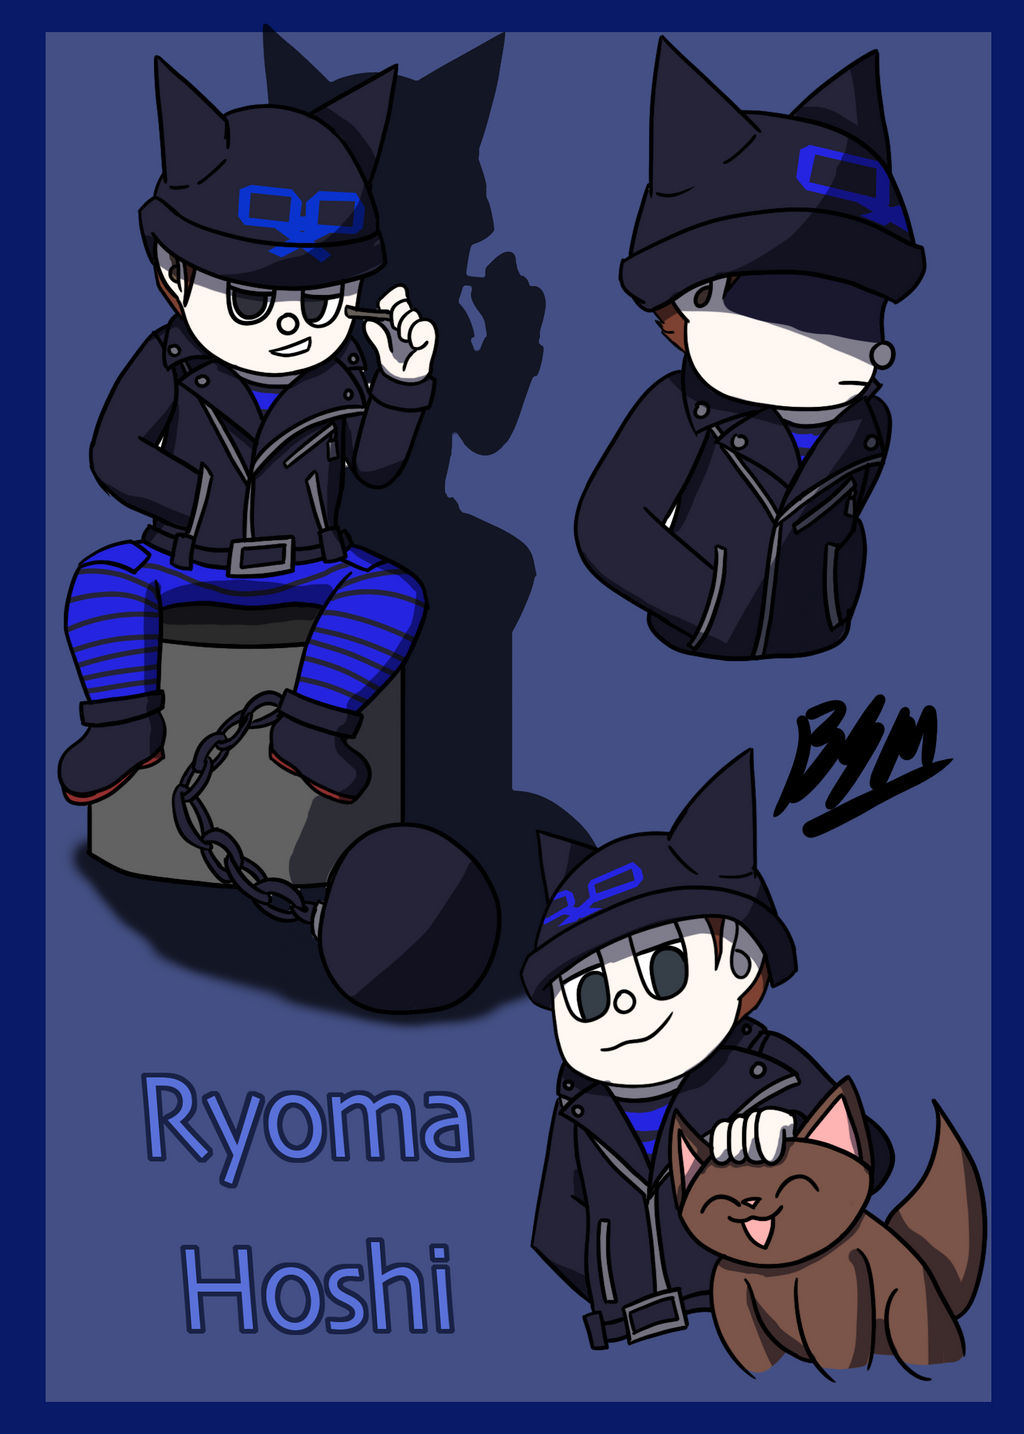 Danganronpa V3 06 Ryoma Hoshi By Mamaluigi2018 On Deviantart Hoshi ryoma #what's this called #i call it the cat grip #you know how cats grab kittens like this #they're both associated with cats #and have cat silhouettes. danganronpa v3 06 ryoma hoshi by